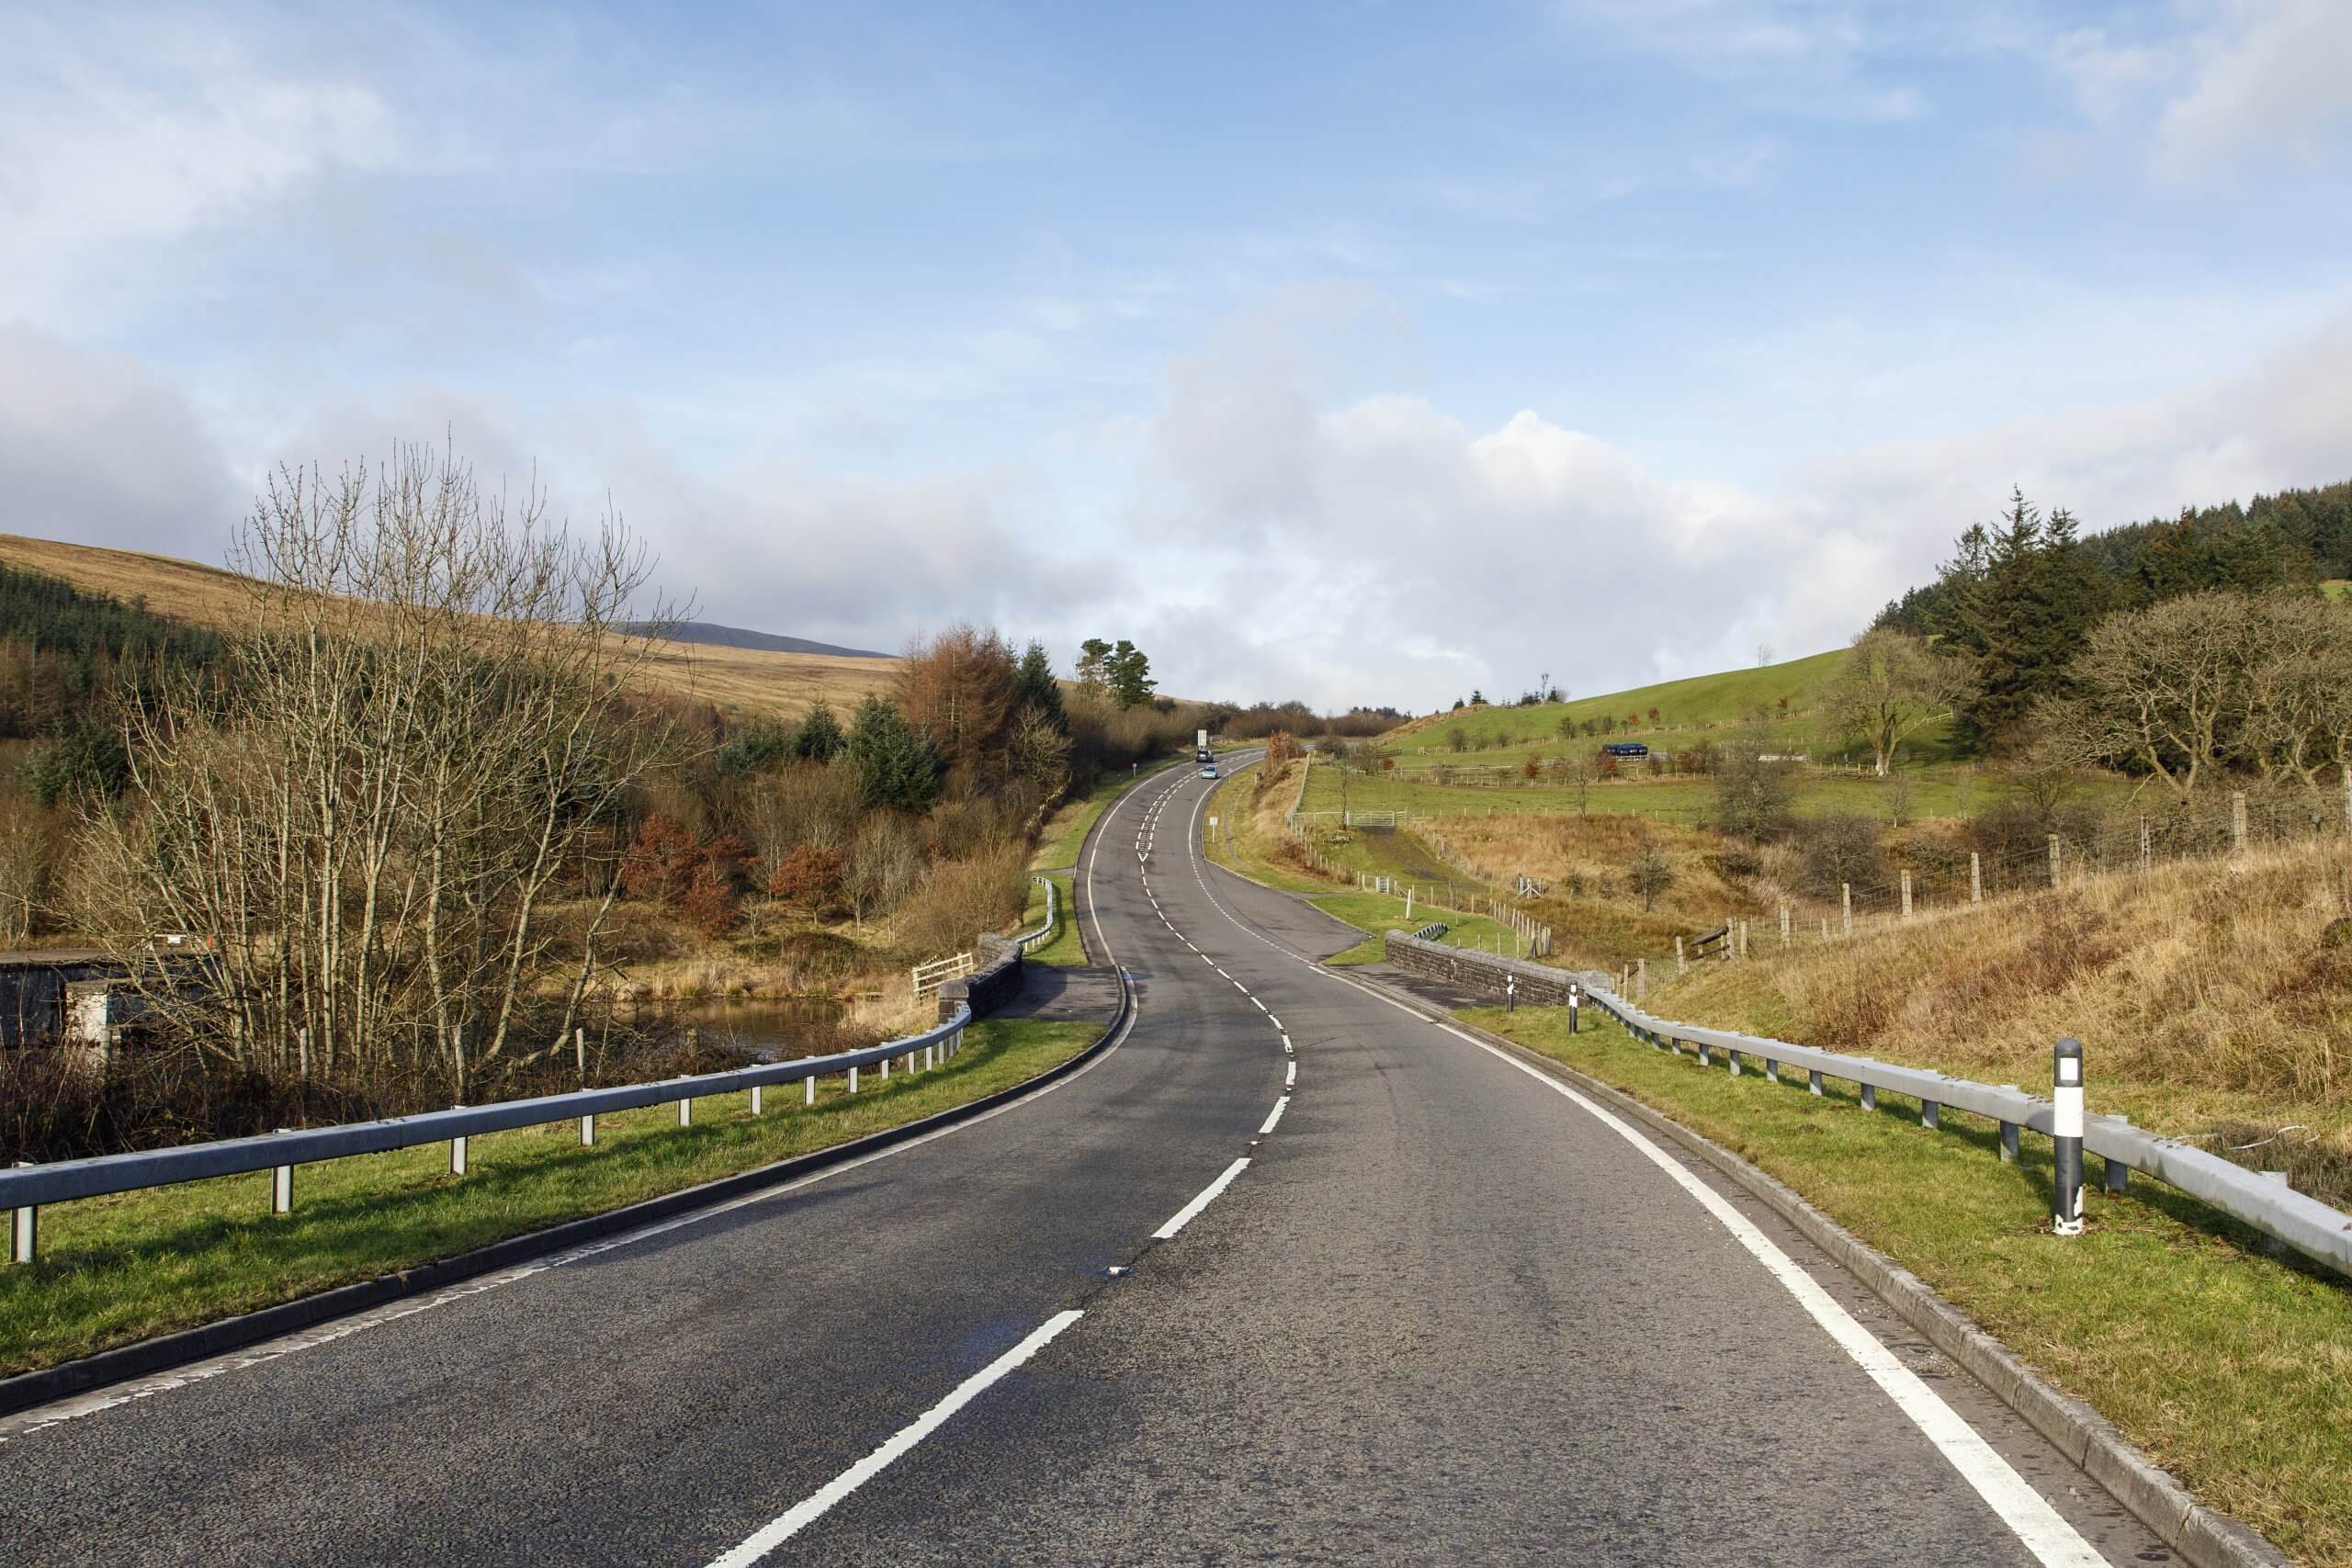 A470 in Wales, a beautiful driving route to include on your UK 'staycation'